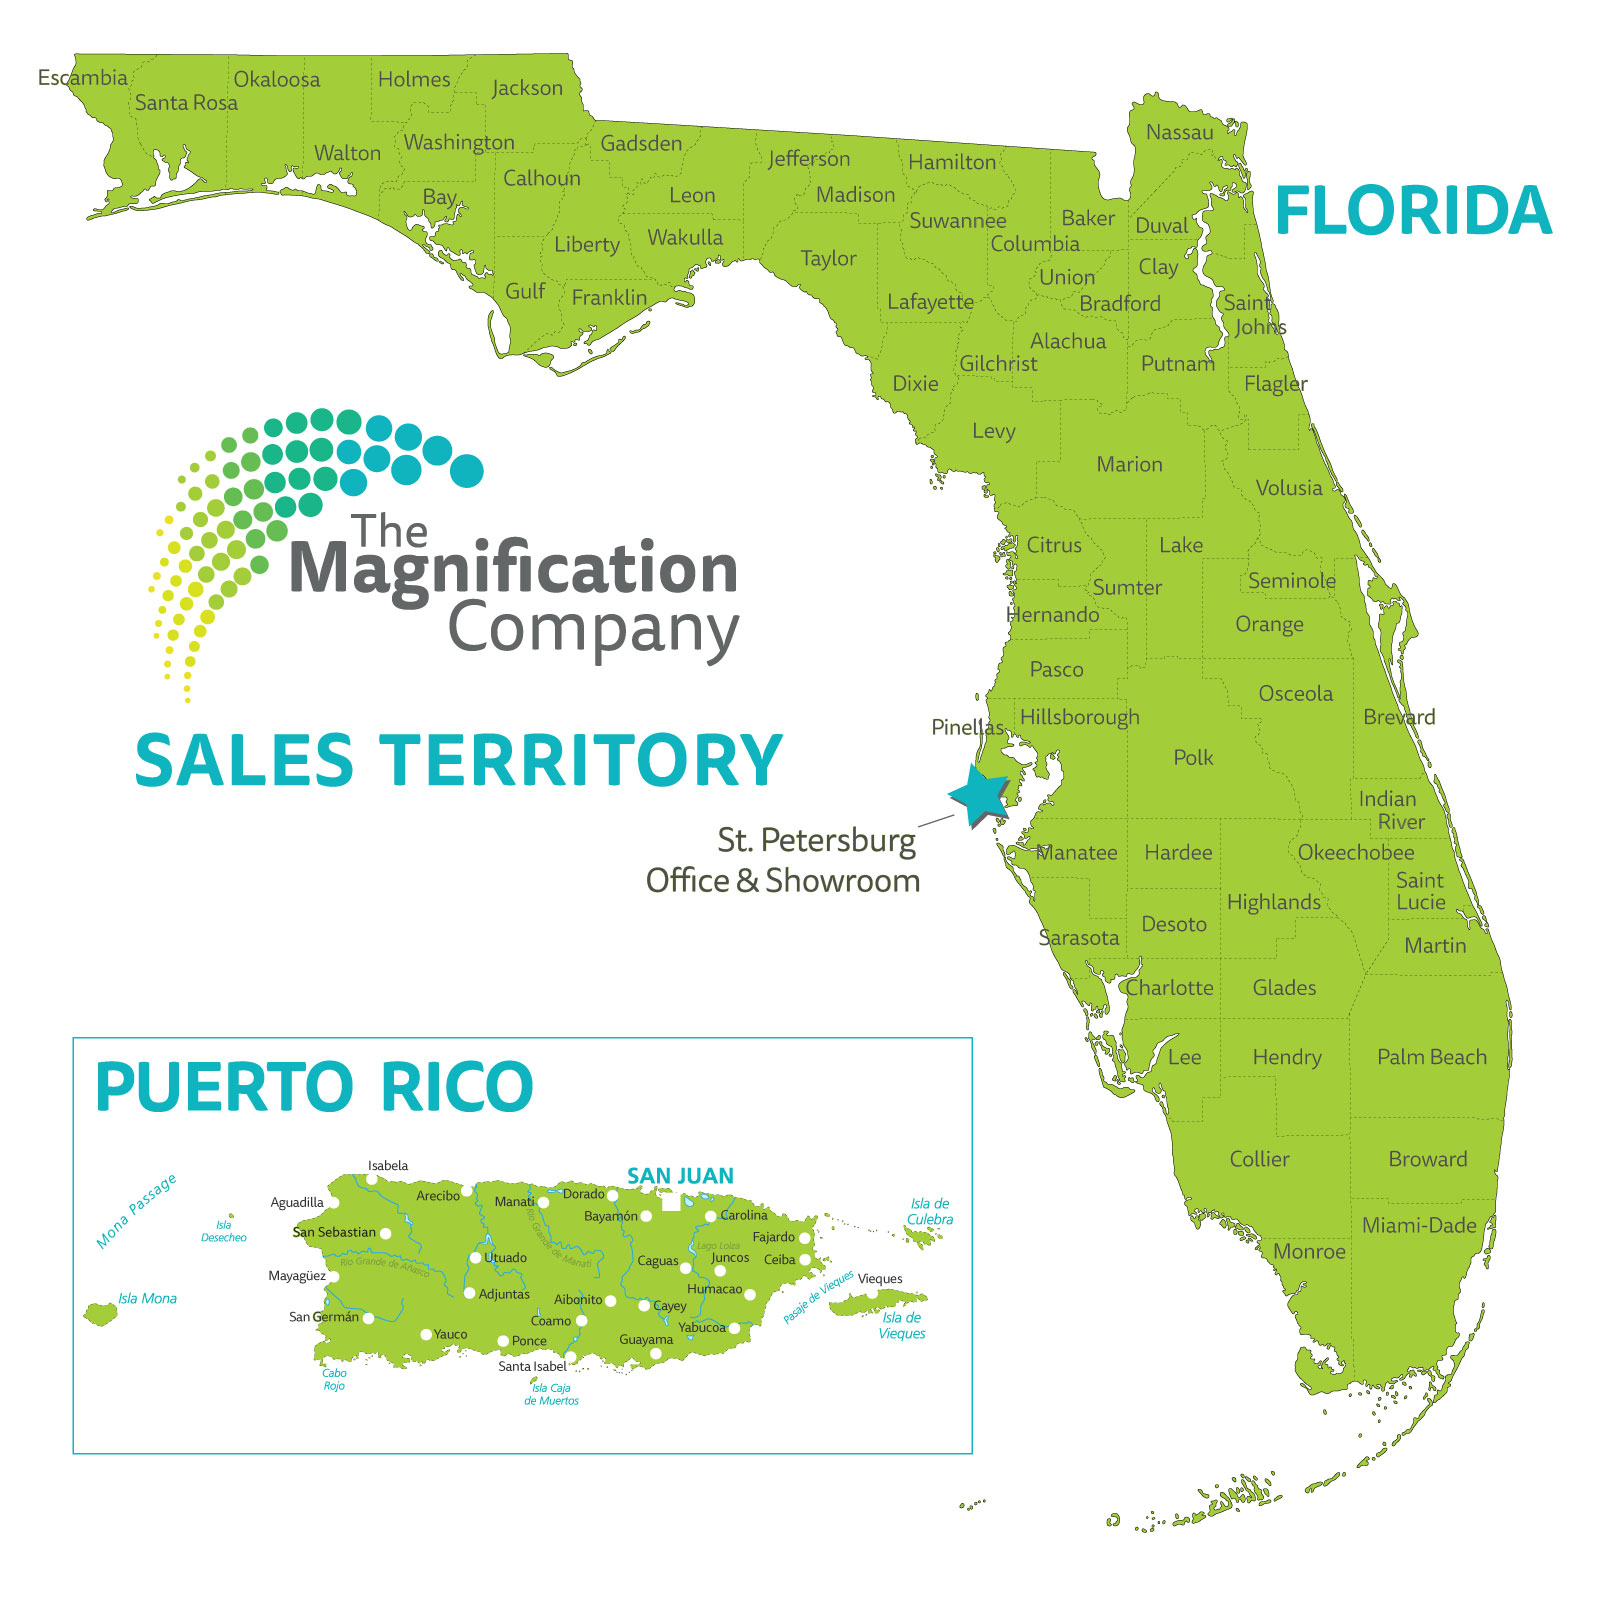 The Magnification company territory map - Florida and Puerto Rico